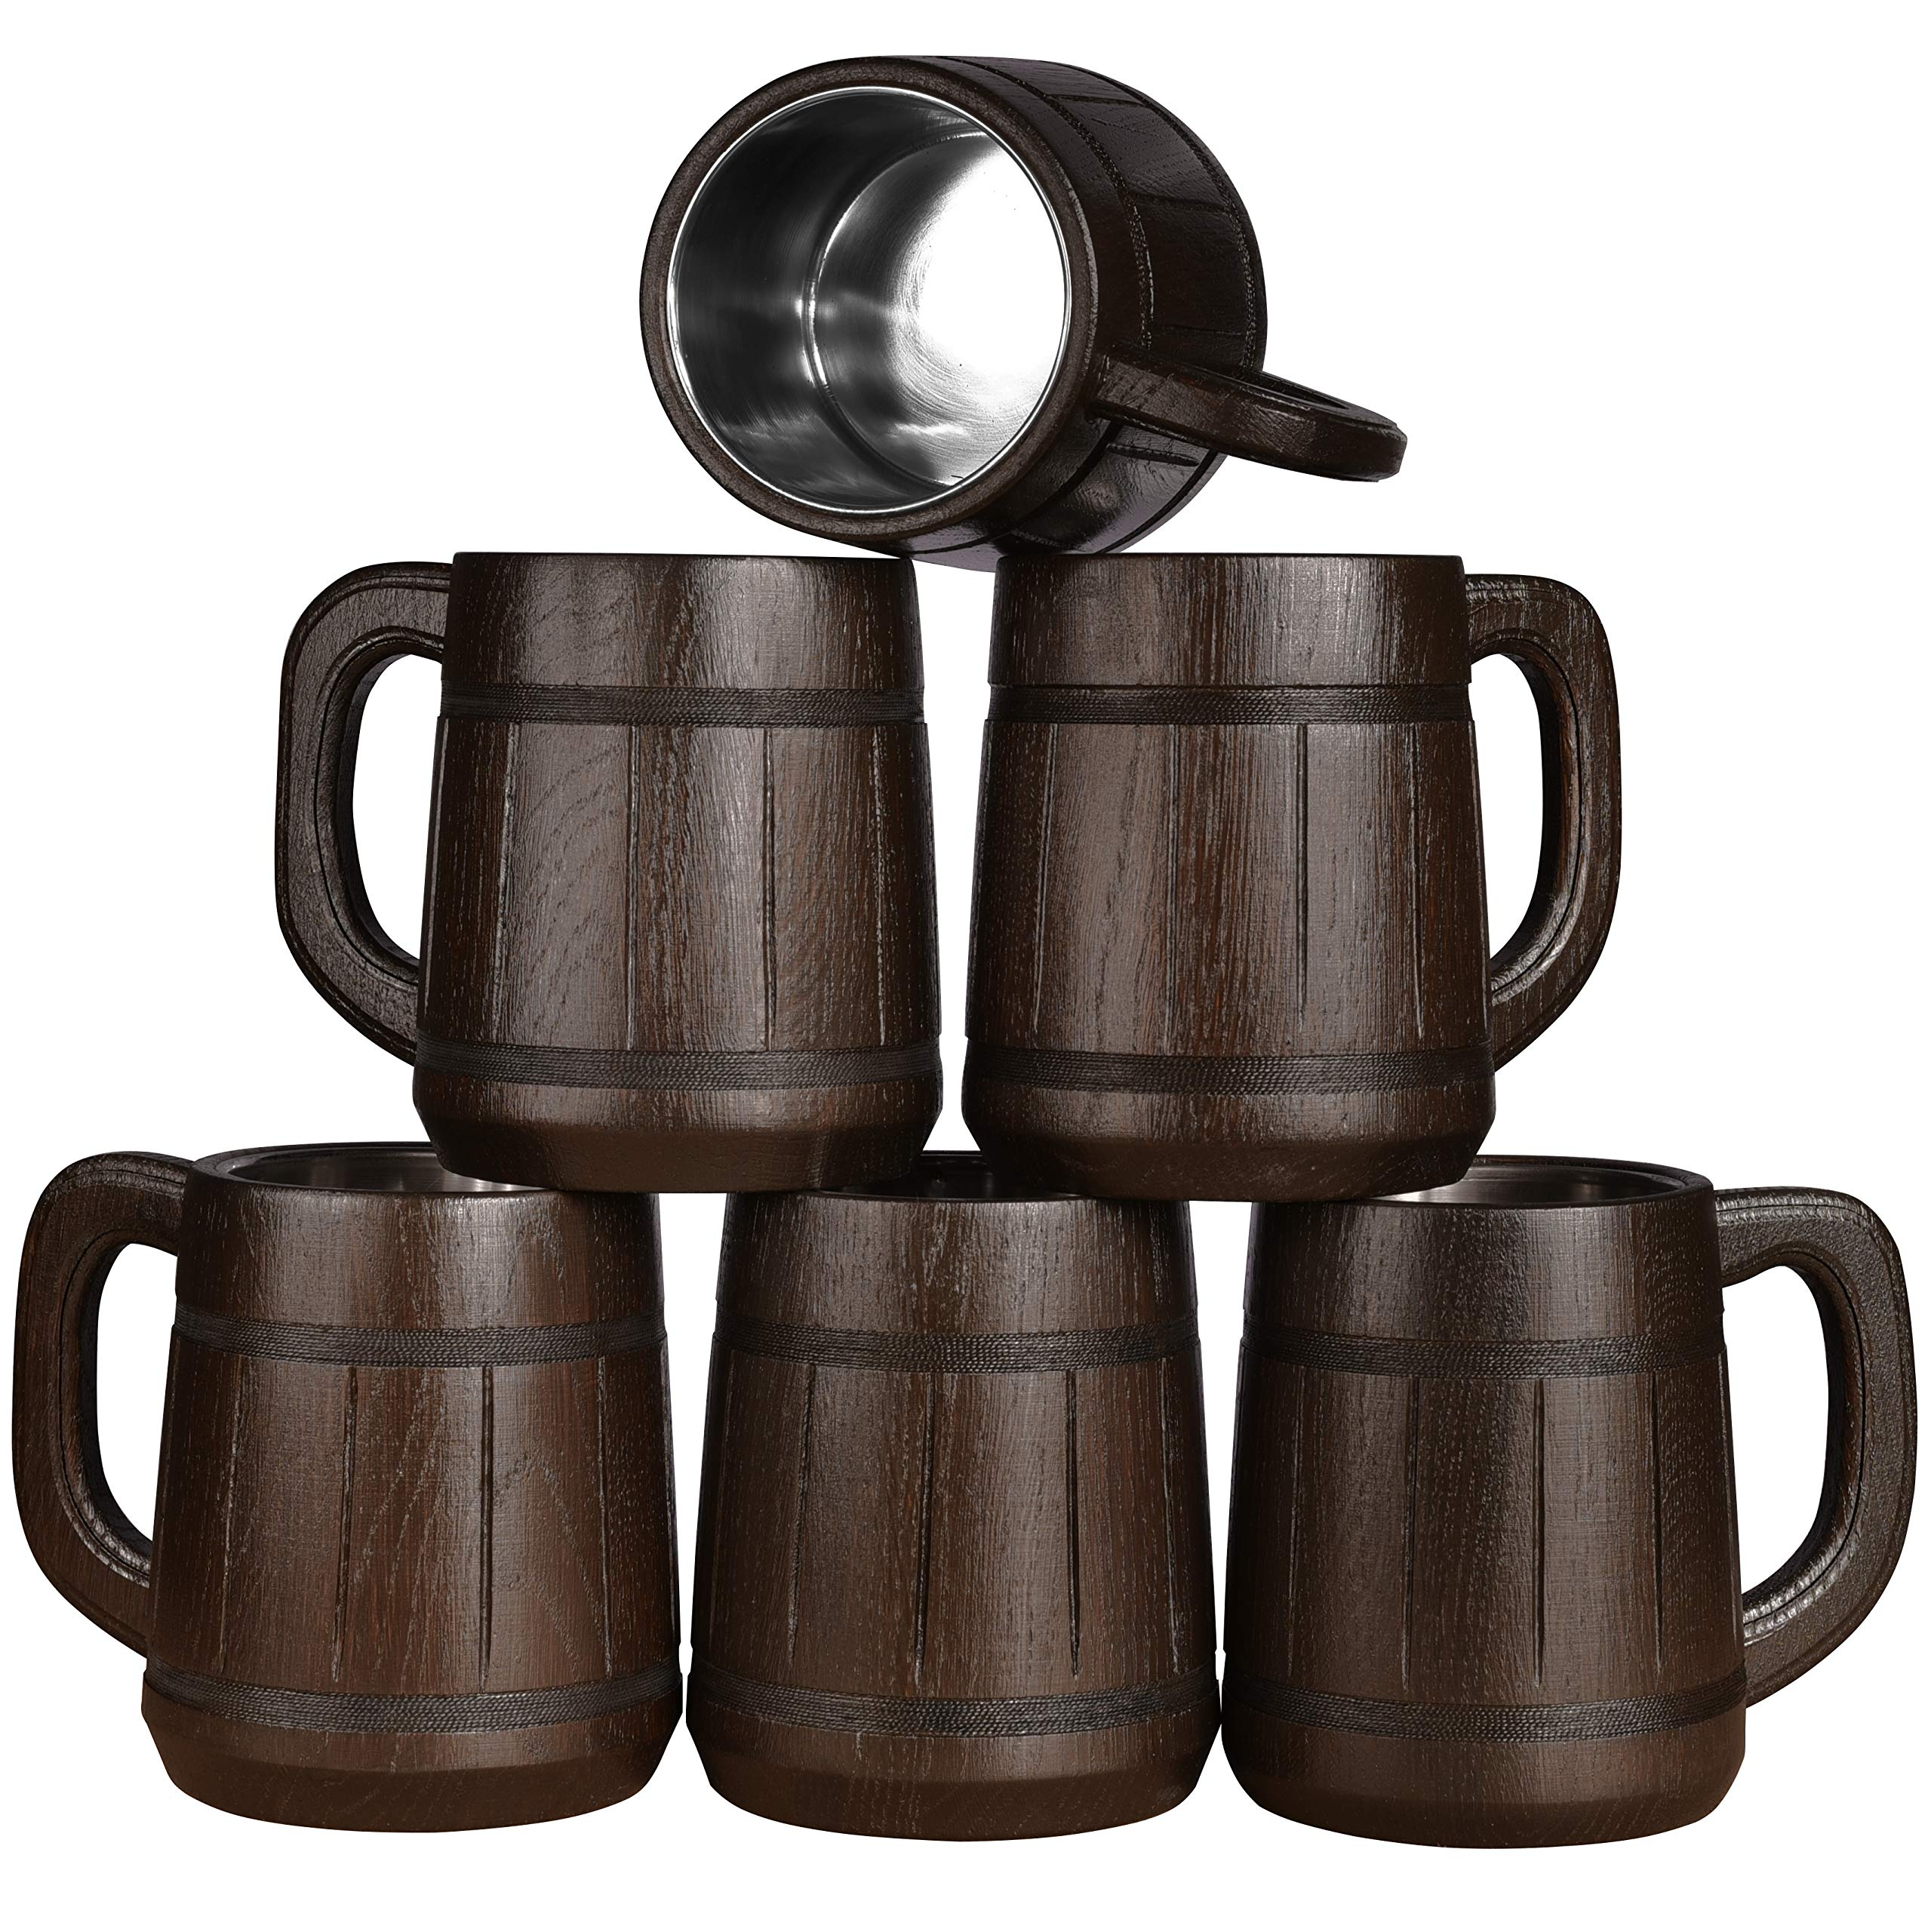 Wooden Beer Mug Set. Men Craft IPA Drinking Cup Pint Wood Stein. Viking Ale Mead Dad Tankard Handle. Funny Father Day Wine Tumbler Birthday Anniversary Gift. Cute Man Cave Rustic Decor Party Accessory